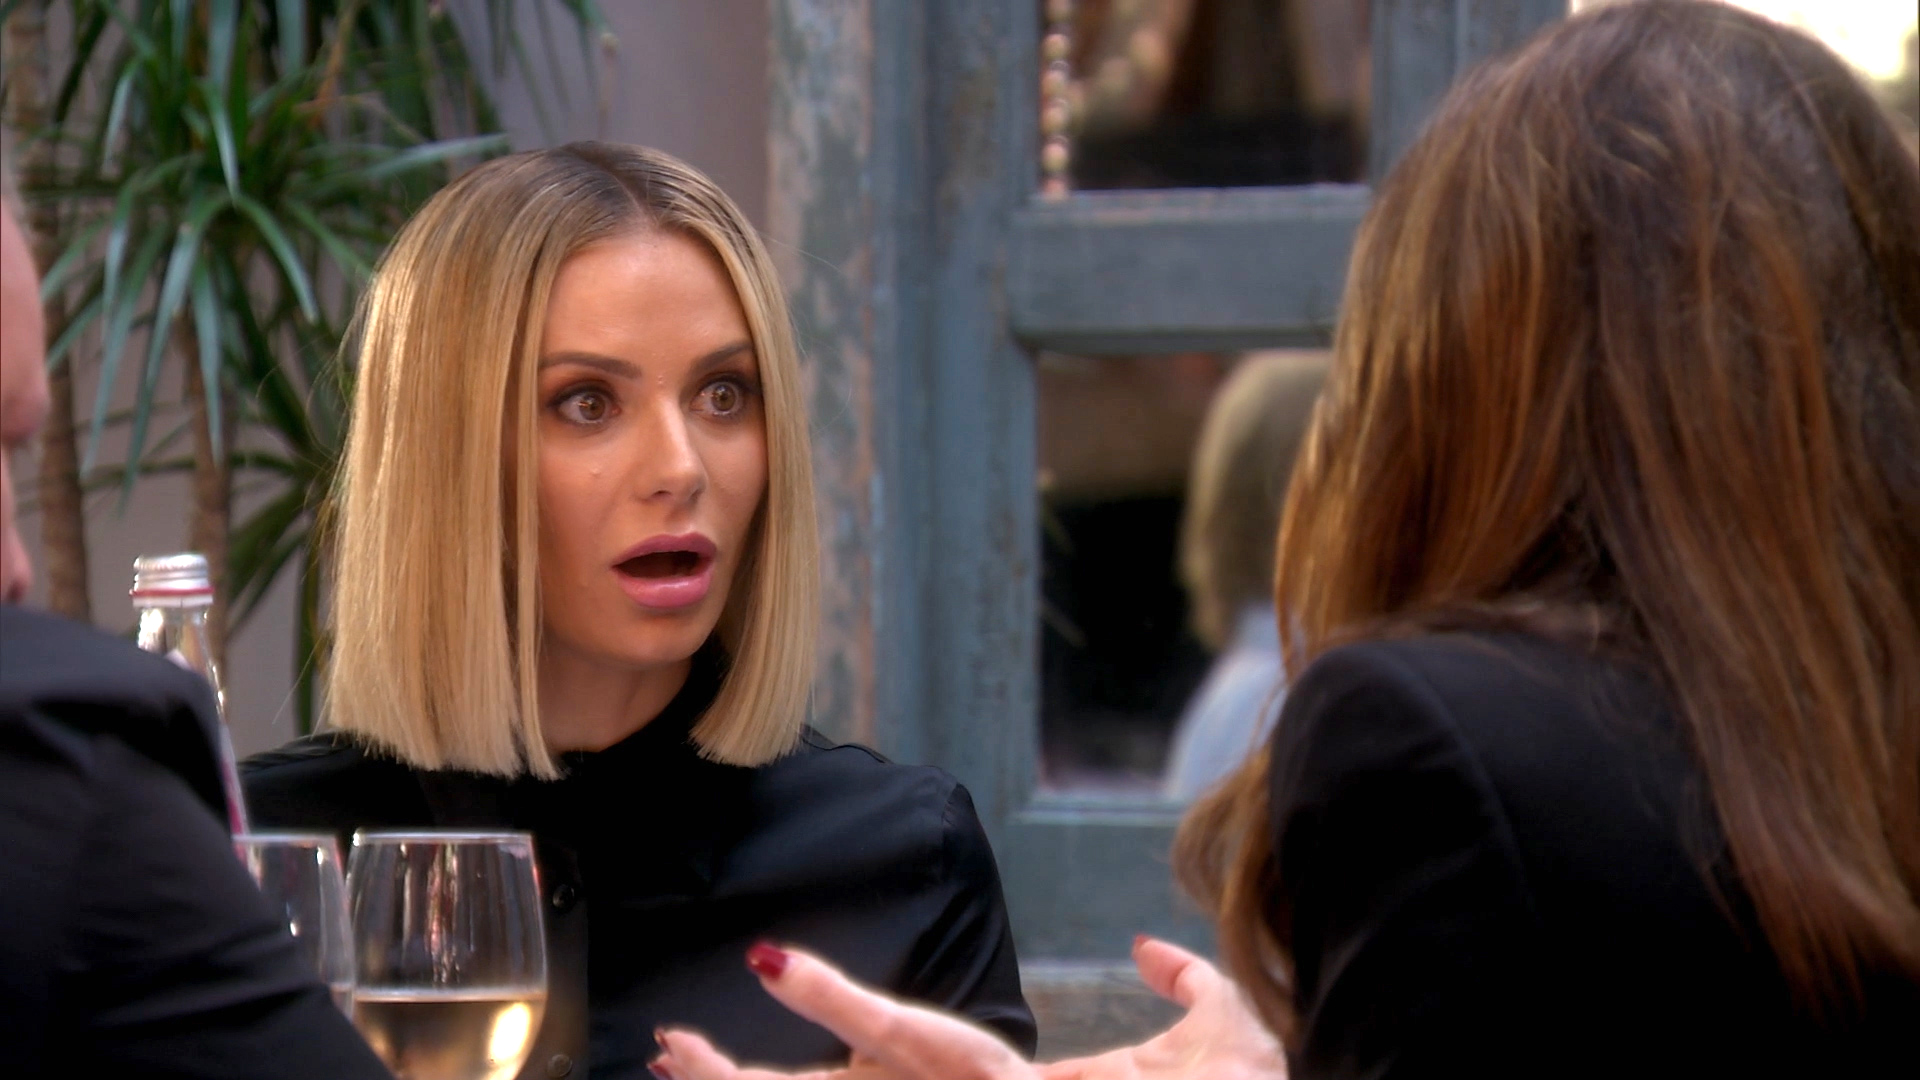 Next on RHOBH: Camille Grammer Calls Teddi Mellencamp Arroyave a Know-It-All